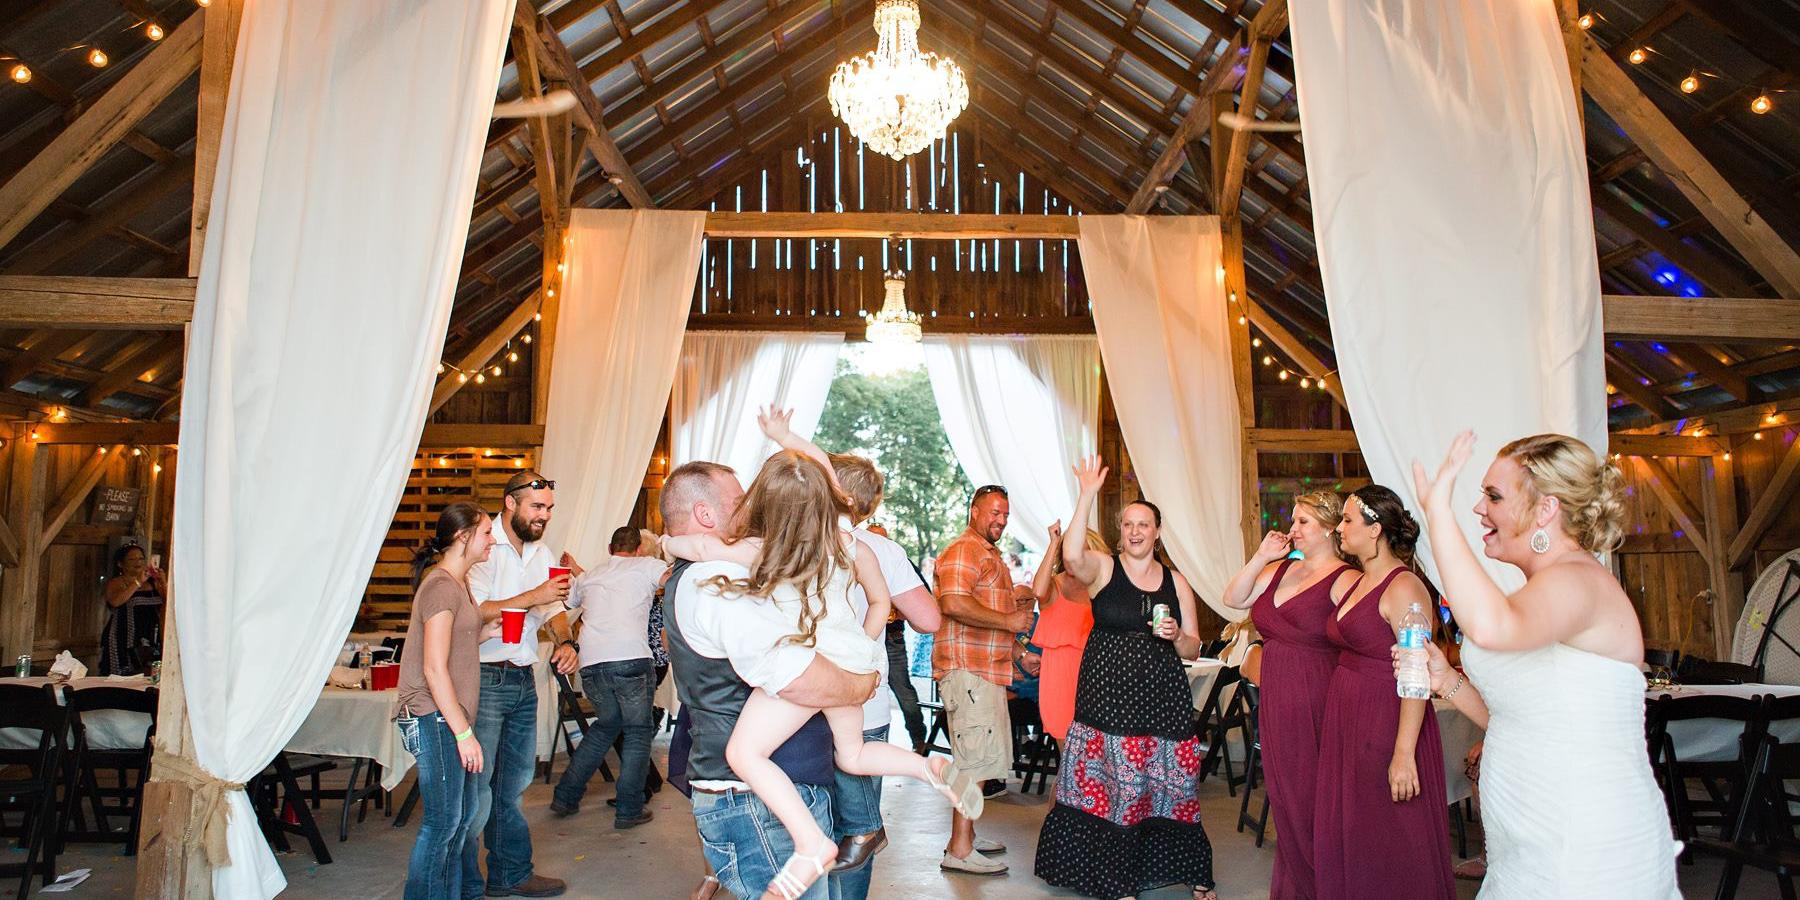 The Barn at Cosgray Christmas Trees wedding Northwest Indiana